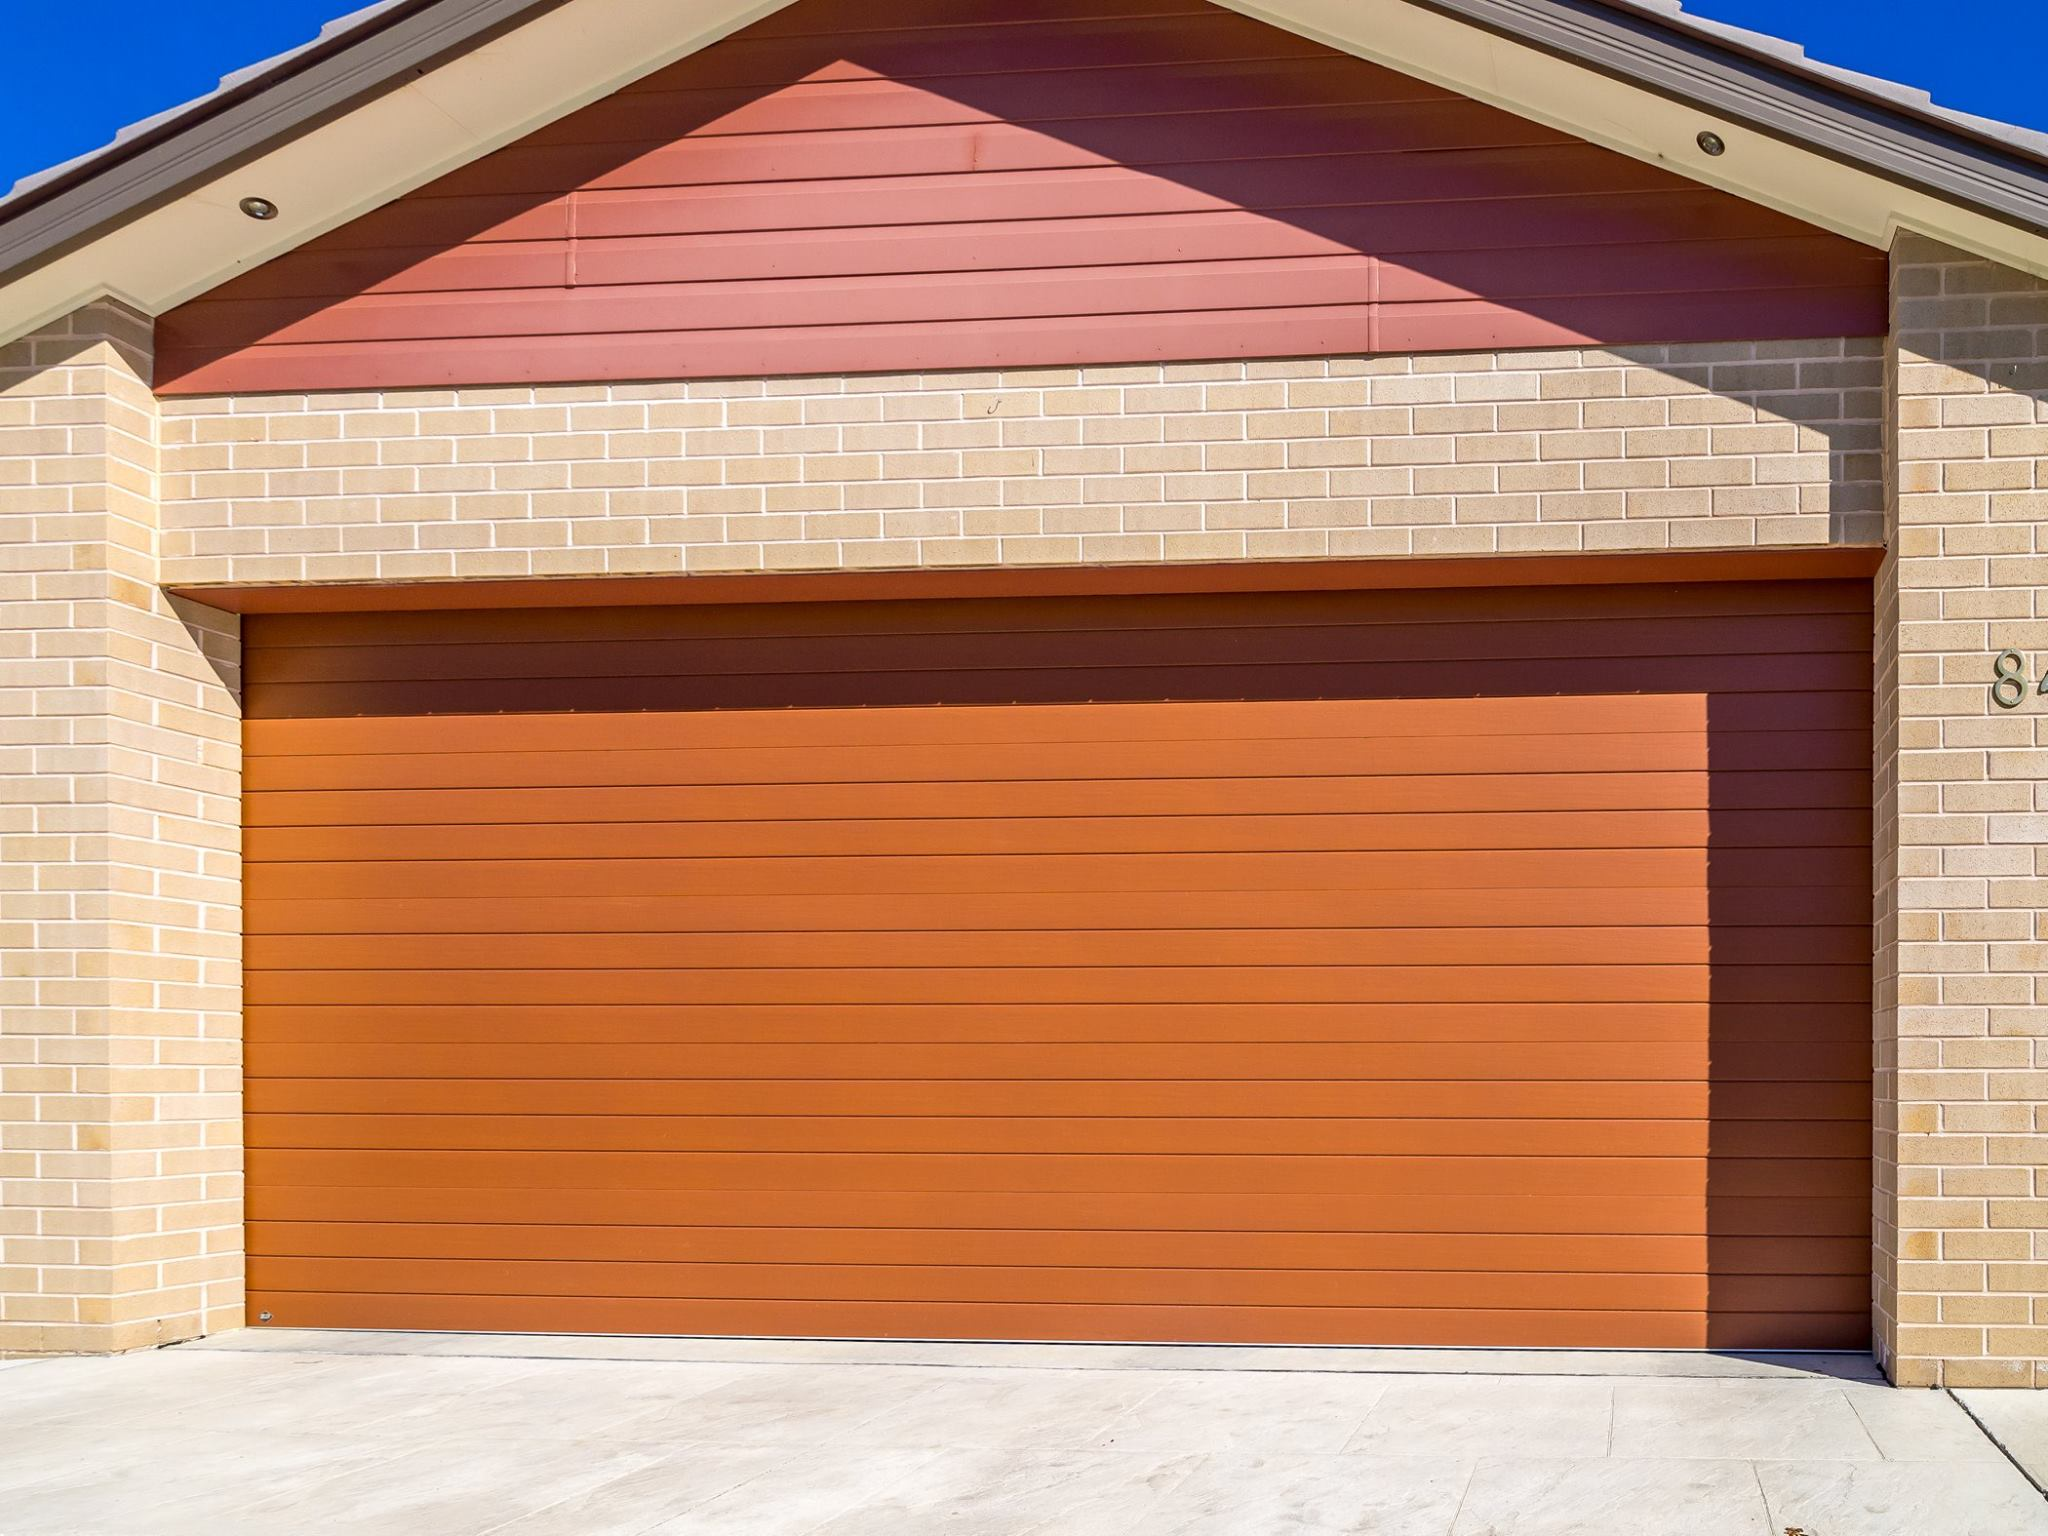 B\u0026D Panelift Seville in Timbercoat Teak & Our Gallery | Garage Doors and More